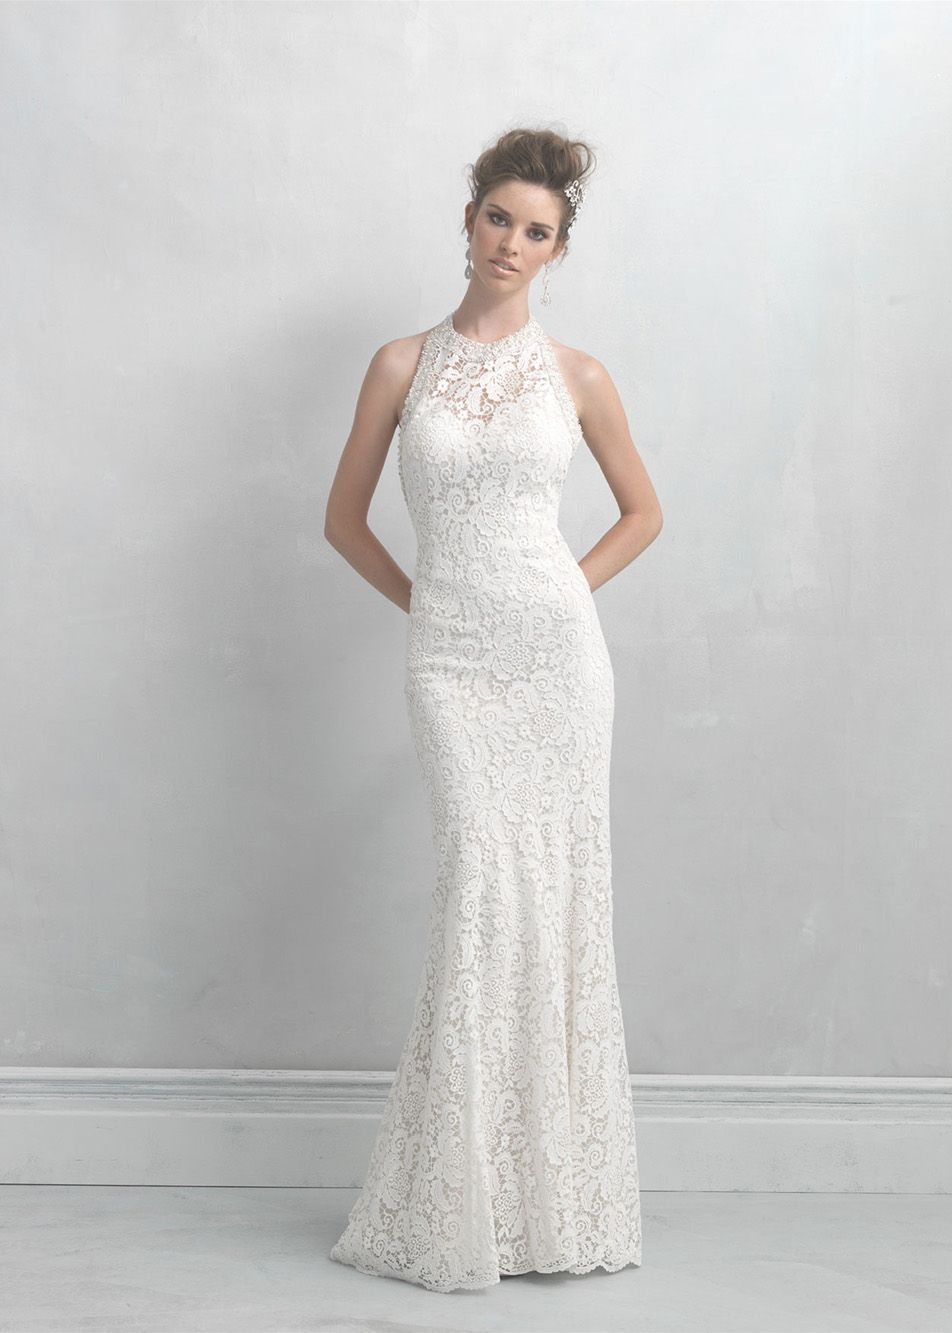 The Perfect Wedding Dress For The Bride Aspire Wedding Wedding Dresses Allure Bridal Wedding Dresses Lace